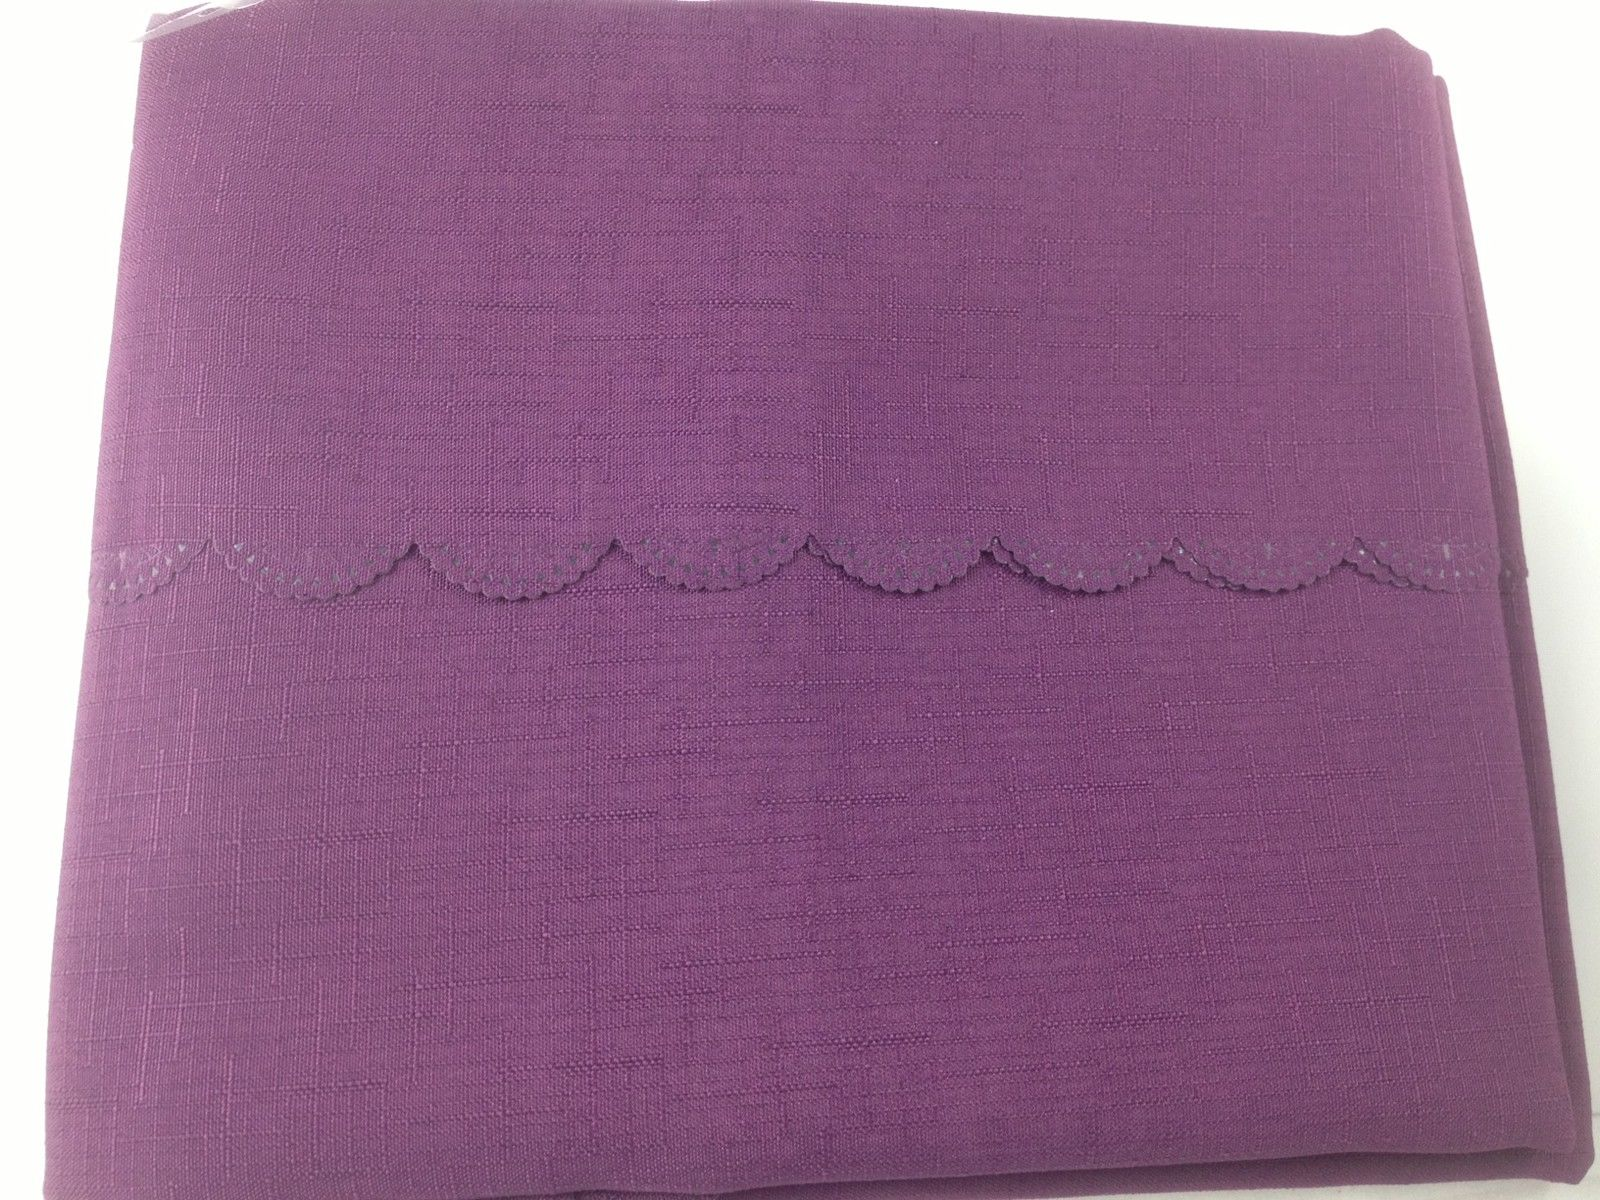 Shell Tablecloth Aubergine 91x91cm